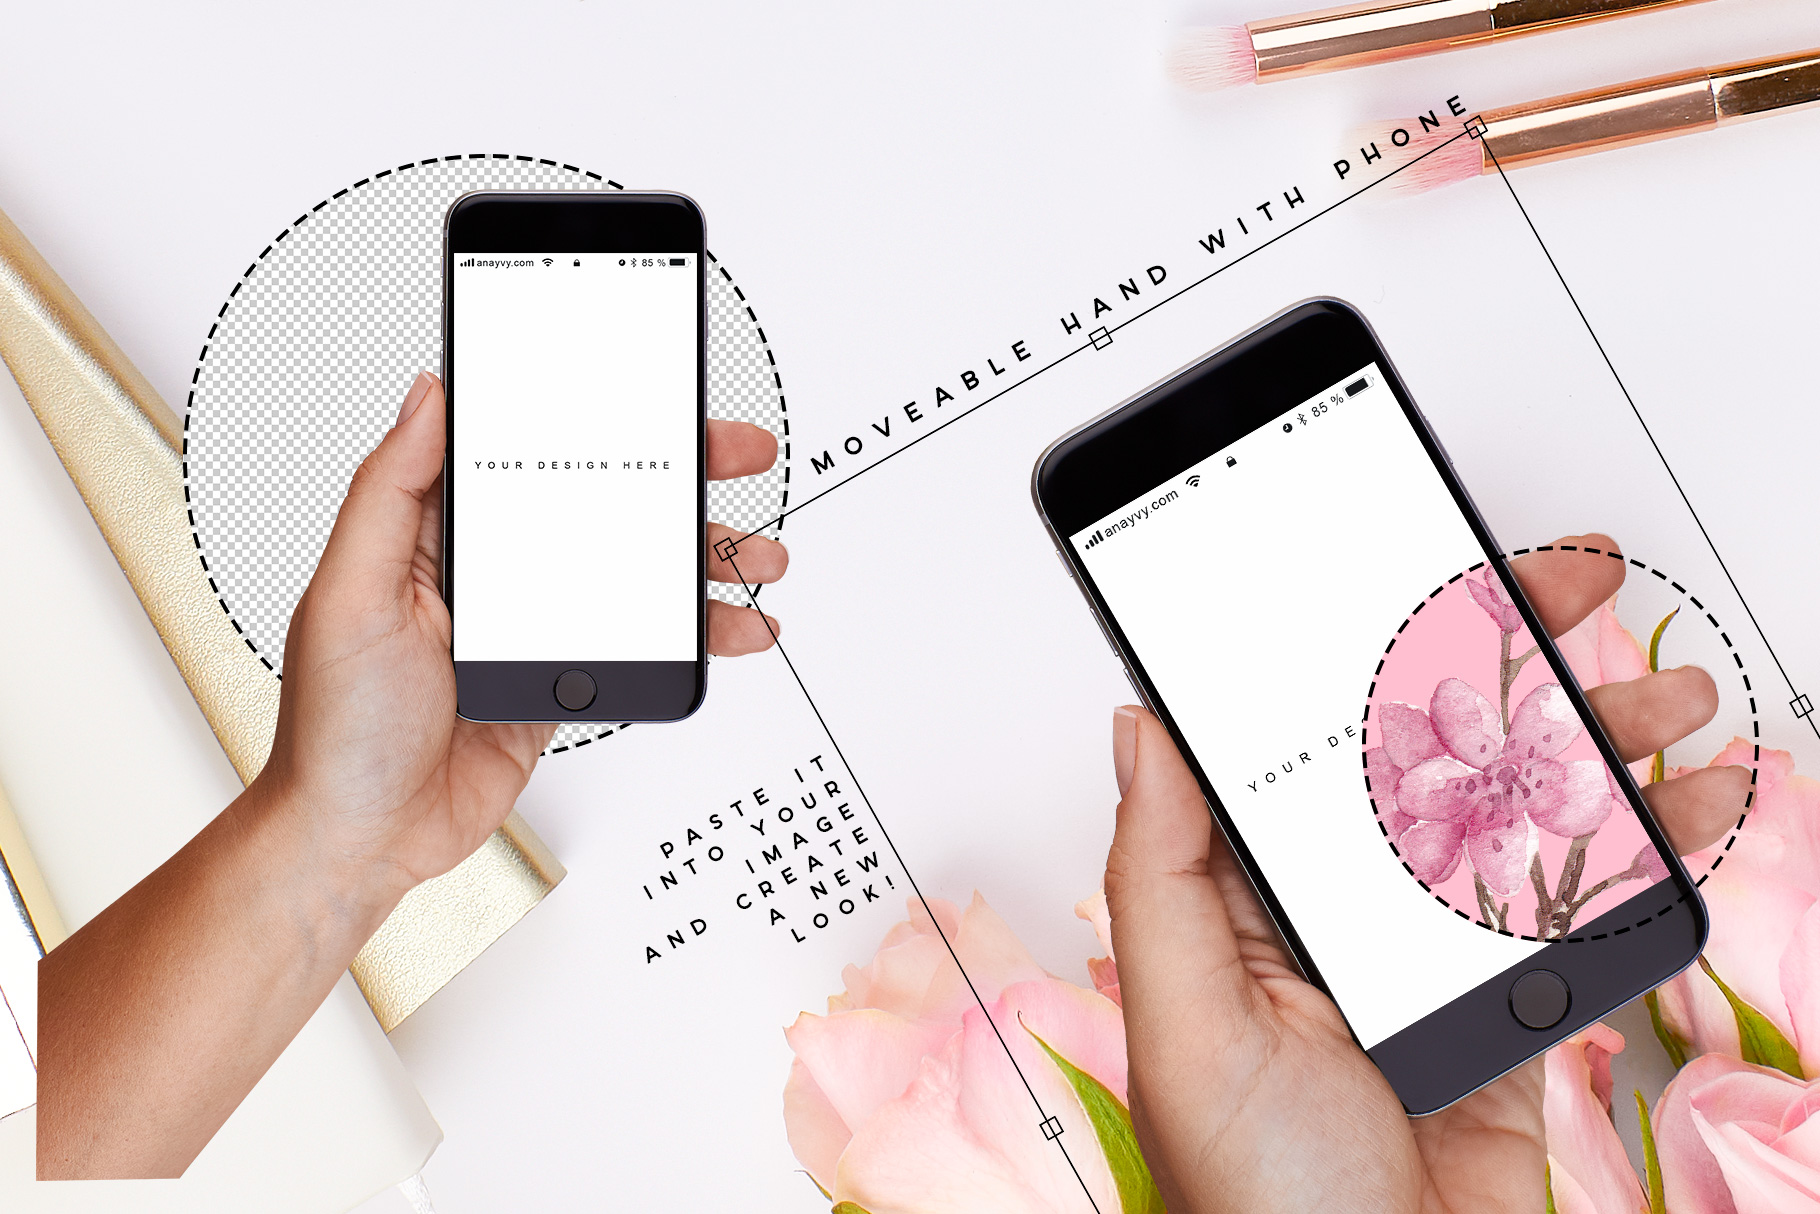 05-pink-blogger-summer-stock-images-bundle-sunglas-mockup-ipad-iphone-hand-planner